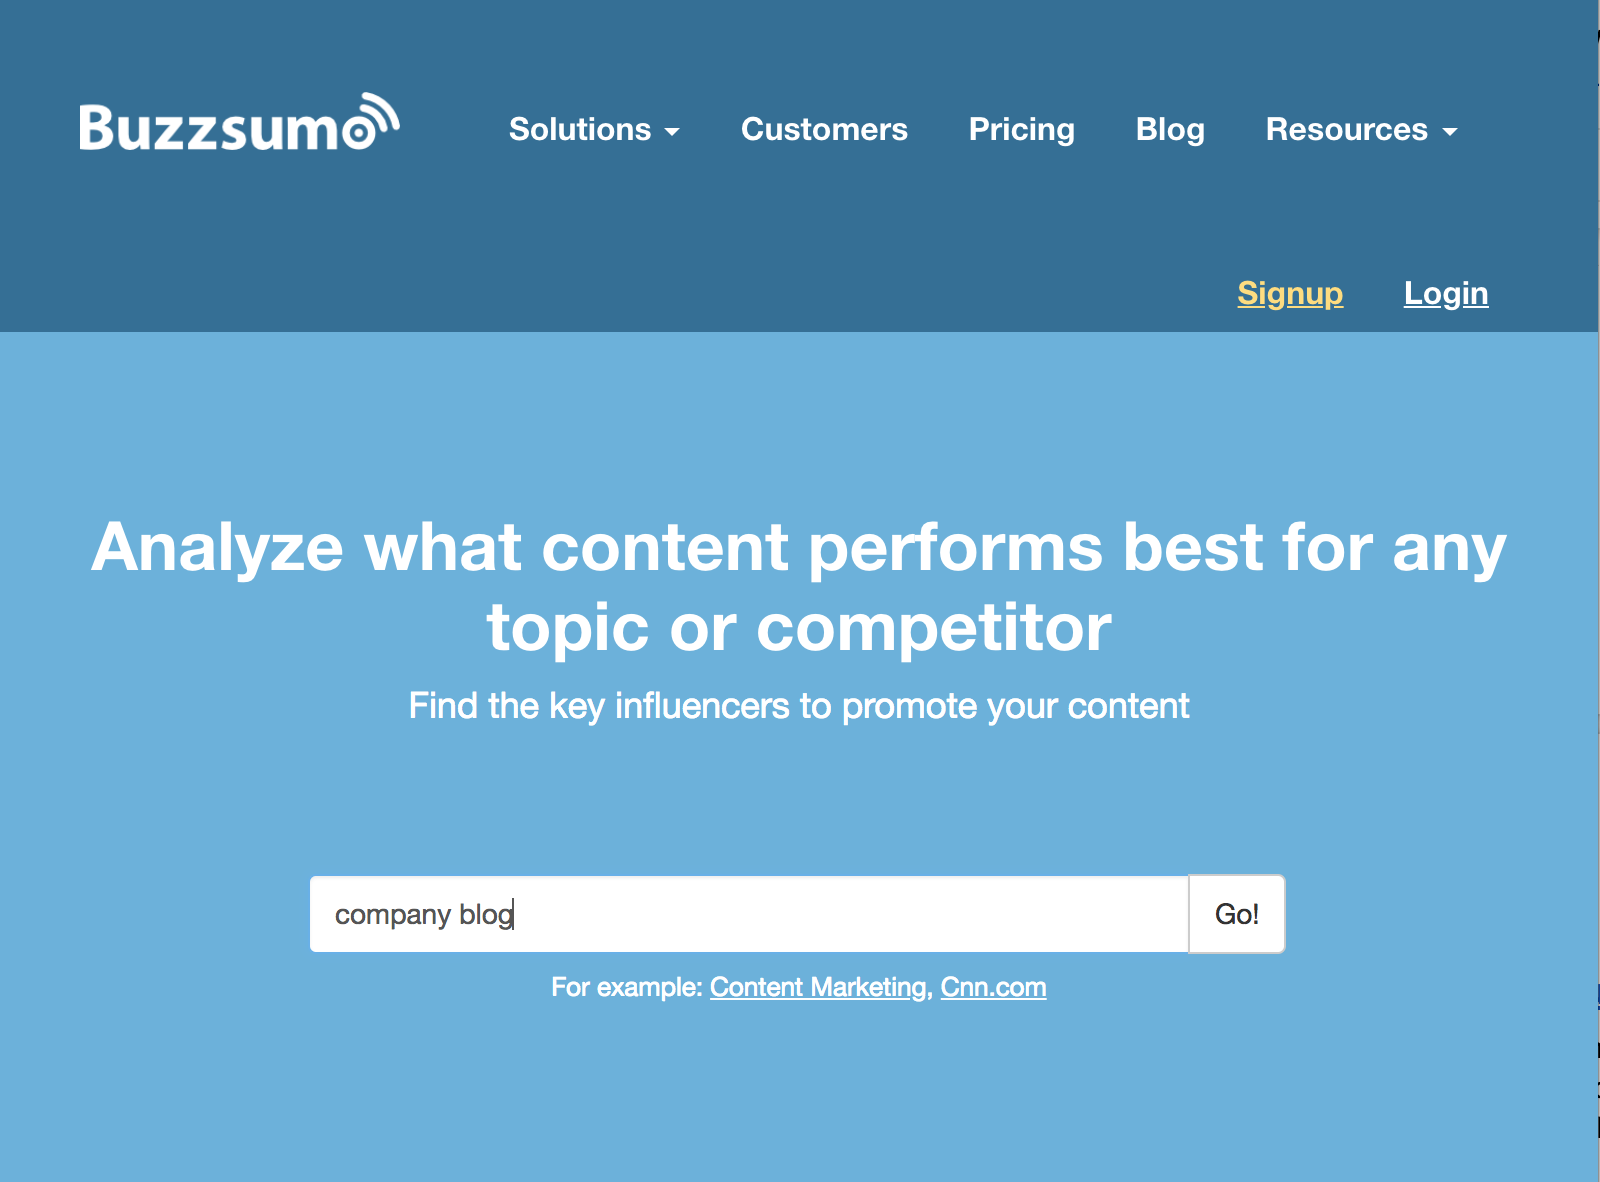 Buzzsumo is great for building your company blog